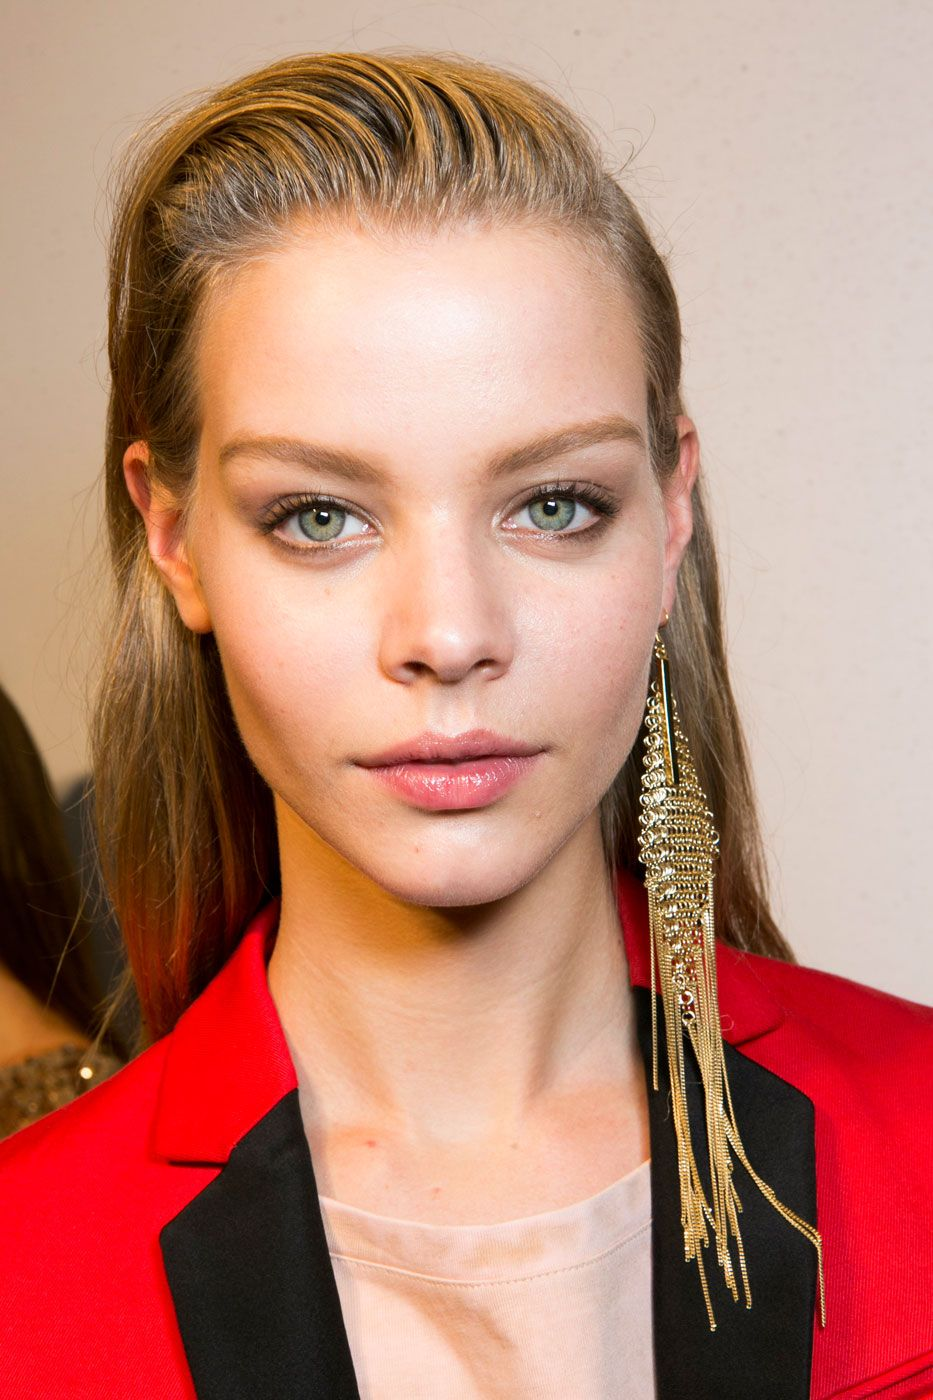 """<p>The wet look is still going strong—and we suspect it's because it's the most transformative greasy hair hack of all. Seriously, just adding sheen to the roots alone will instantly add both edge and polish to your look. At Just Cavalli, hairstylist Guido Palau blow-dried the hair  straight and created a small, '80s-inspired swoop in the front using <a href=""""http://www.ulta.com/ulta/browse/productDetail.jsp?productId=xlsImpprod12292089"""" target=""""_blank"""">Redken Stay High 18 gel-to-mousse</a>.</p>"""